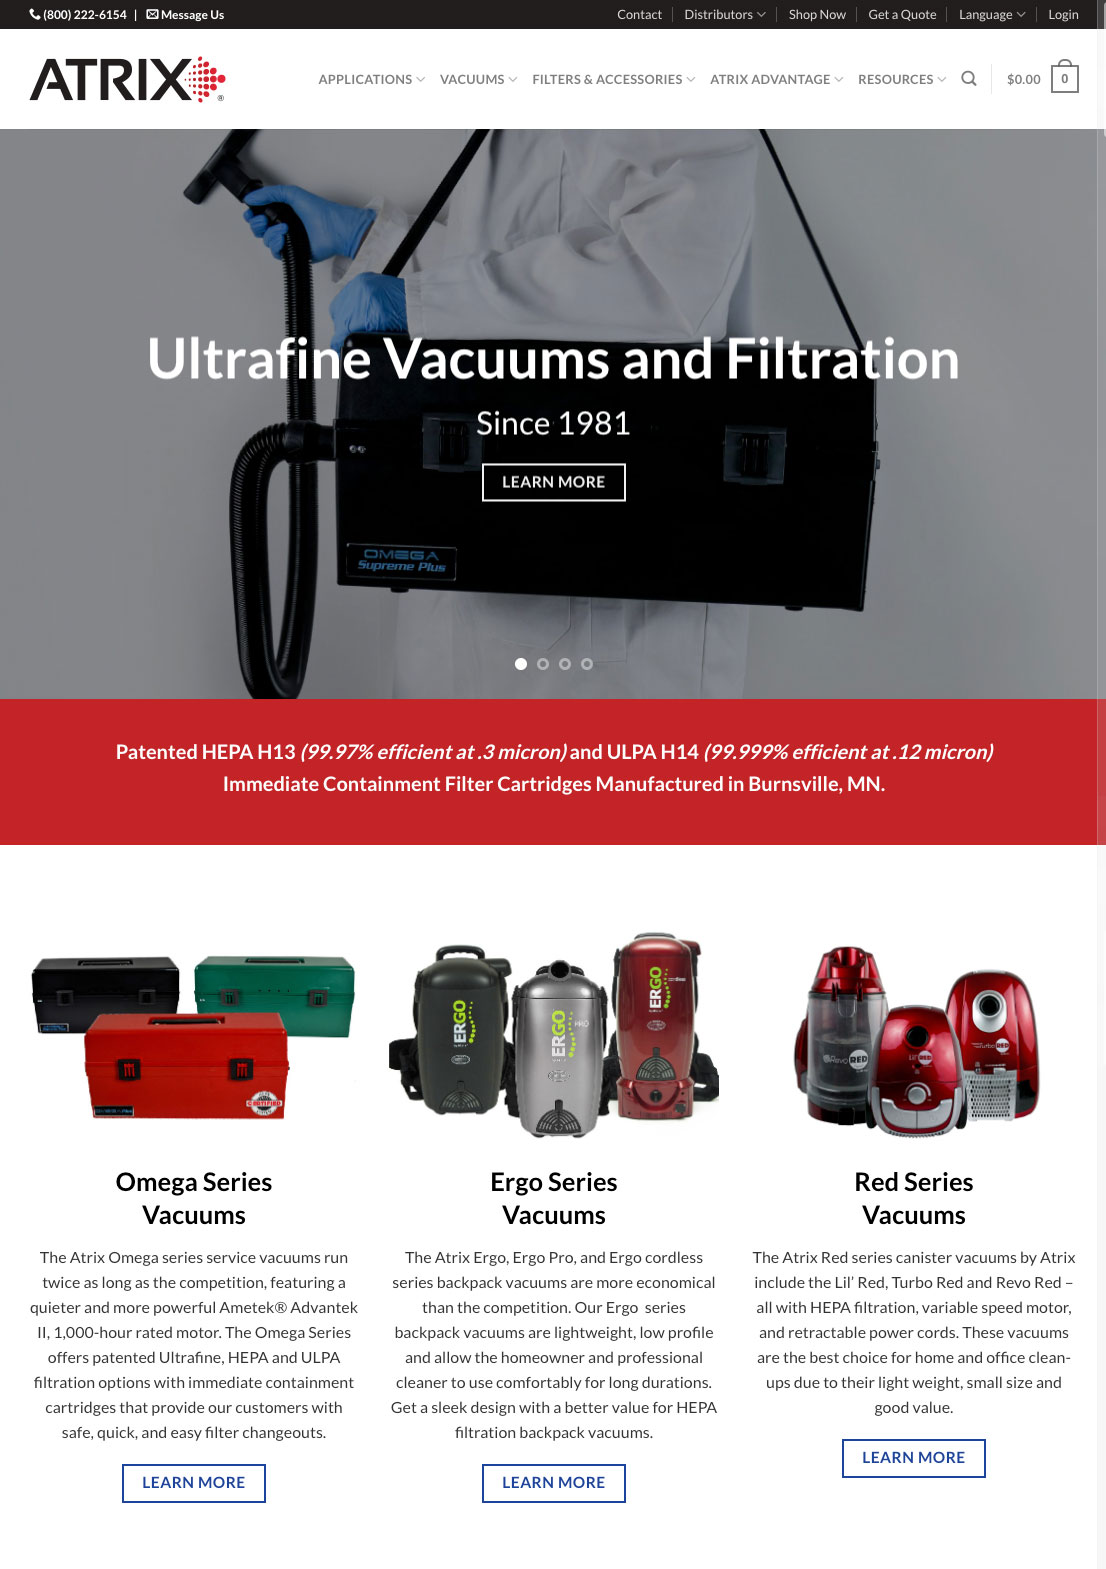 Atrix Vacuum Website